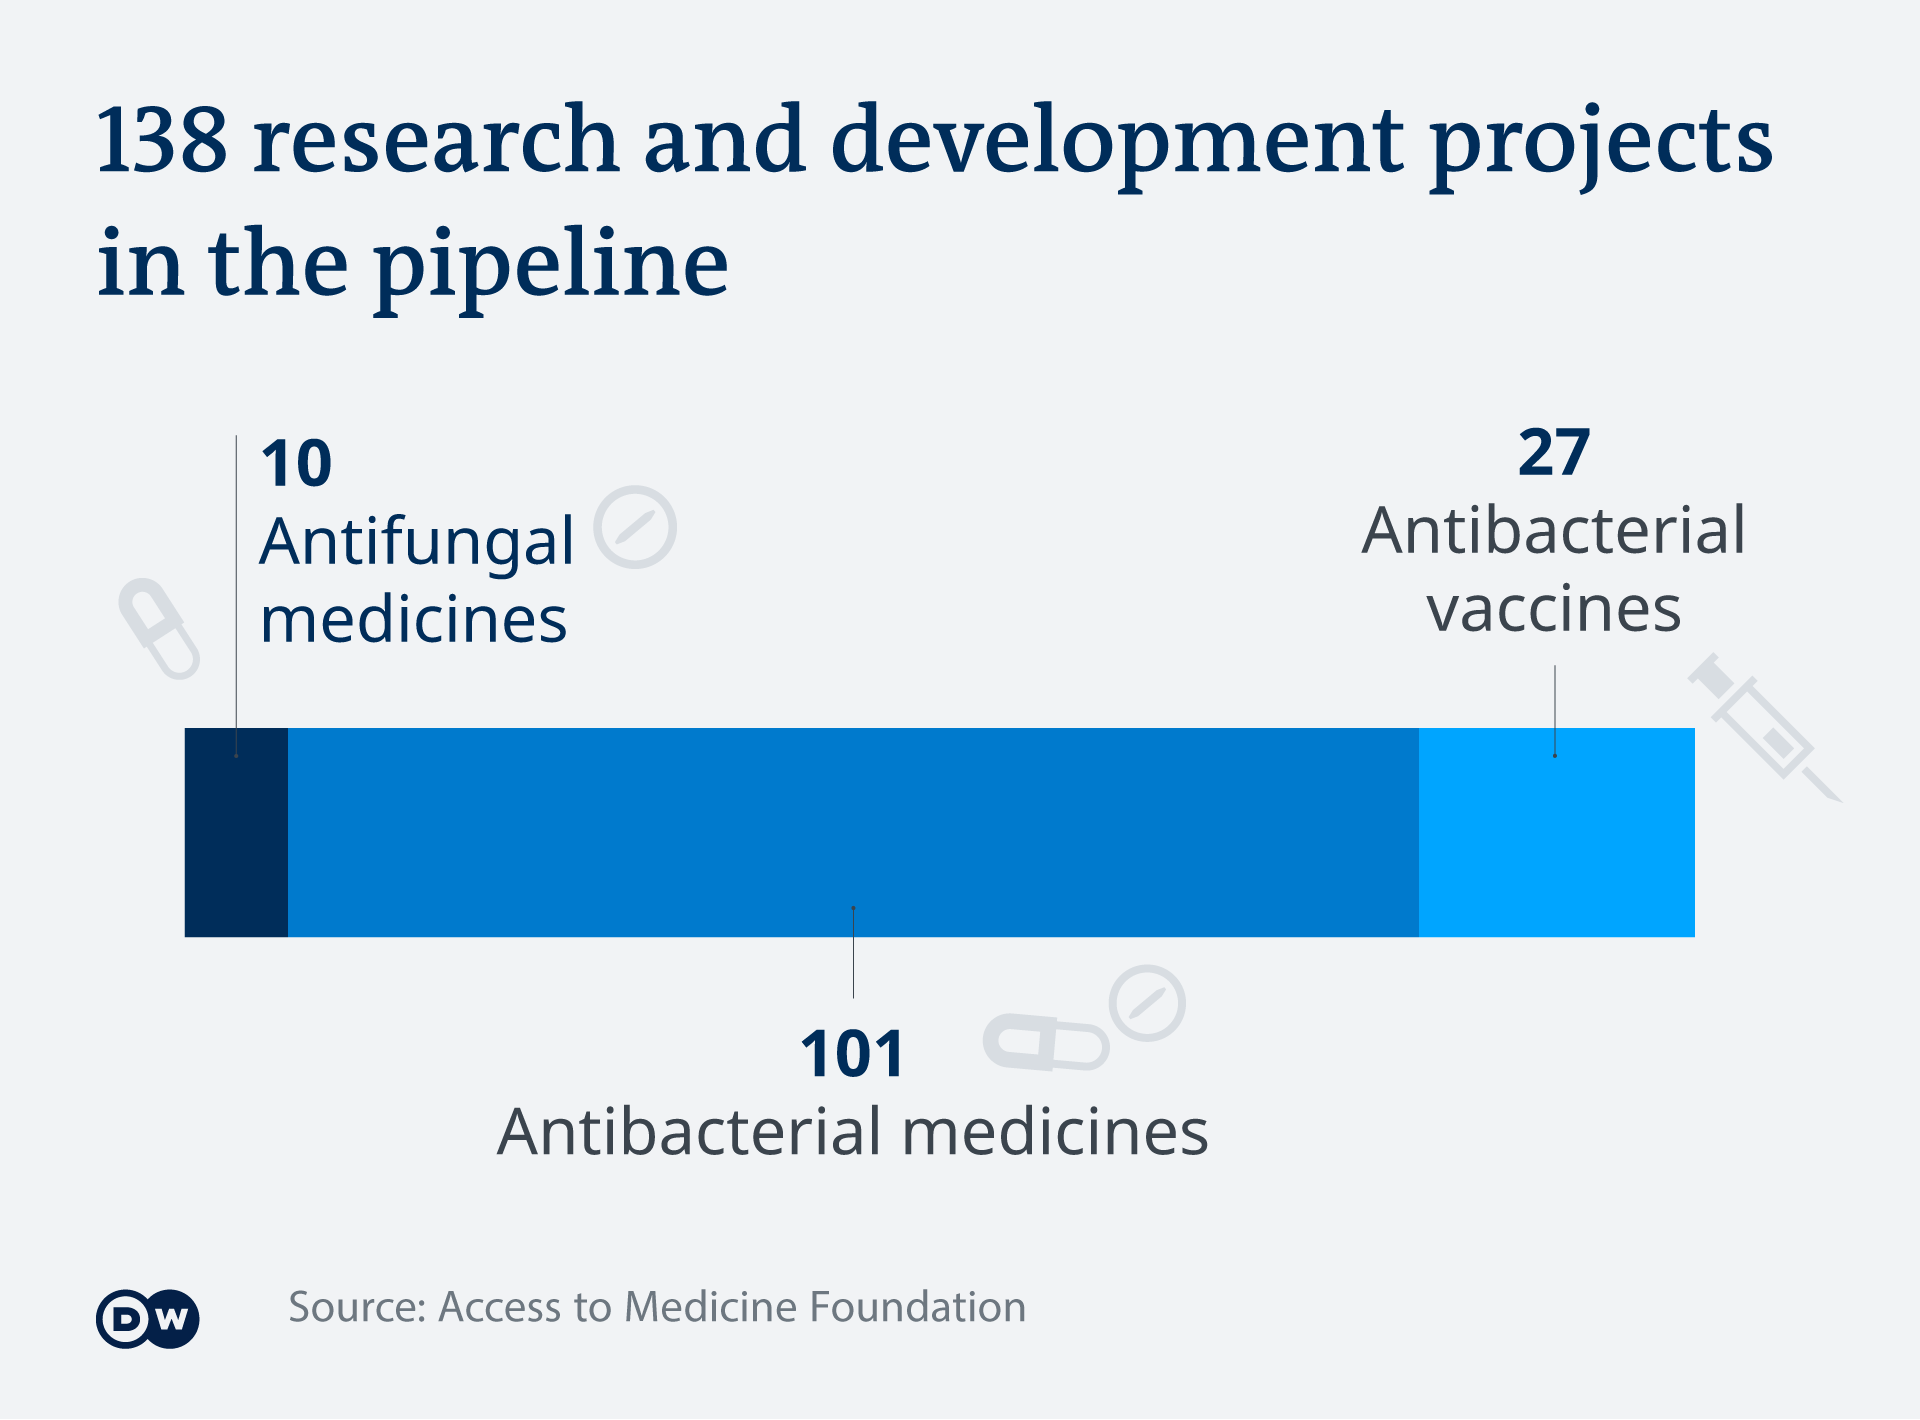 138 R&D projects in the pipeline